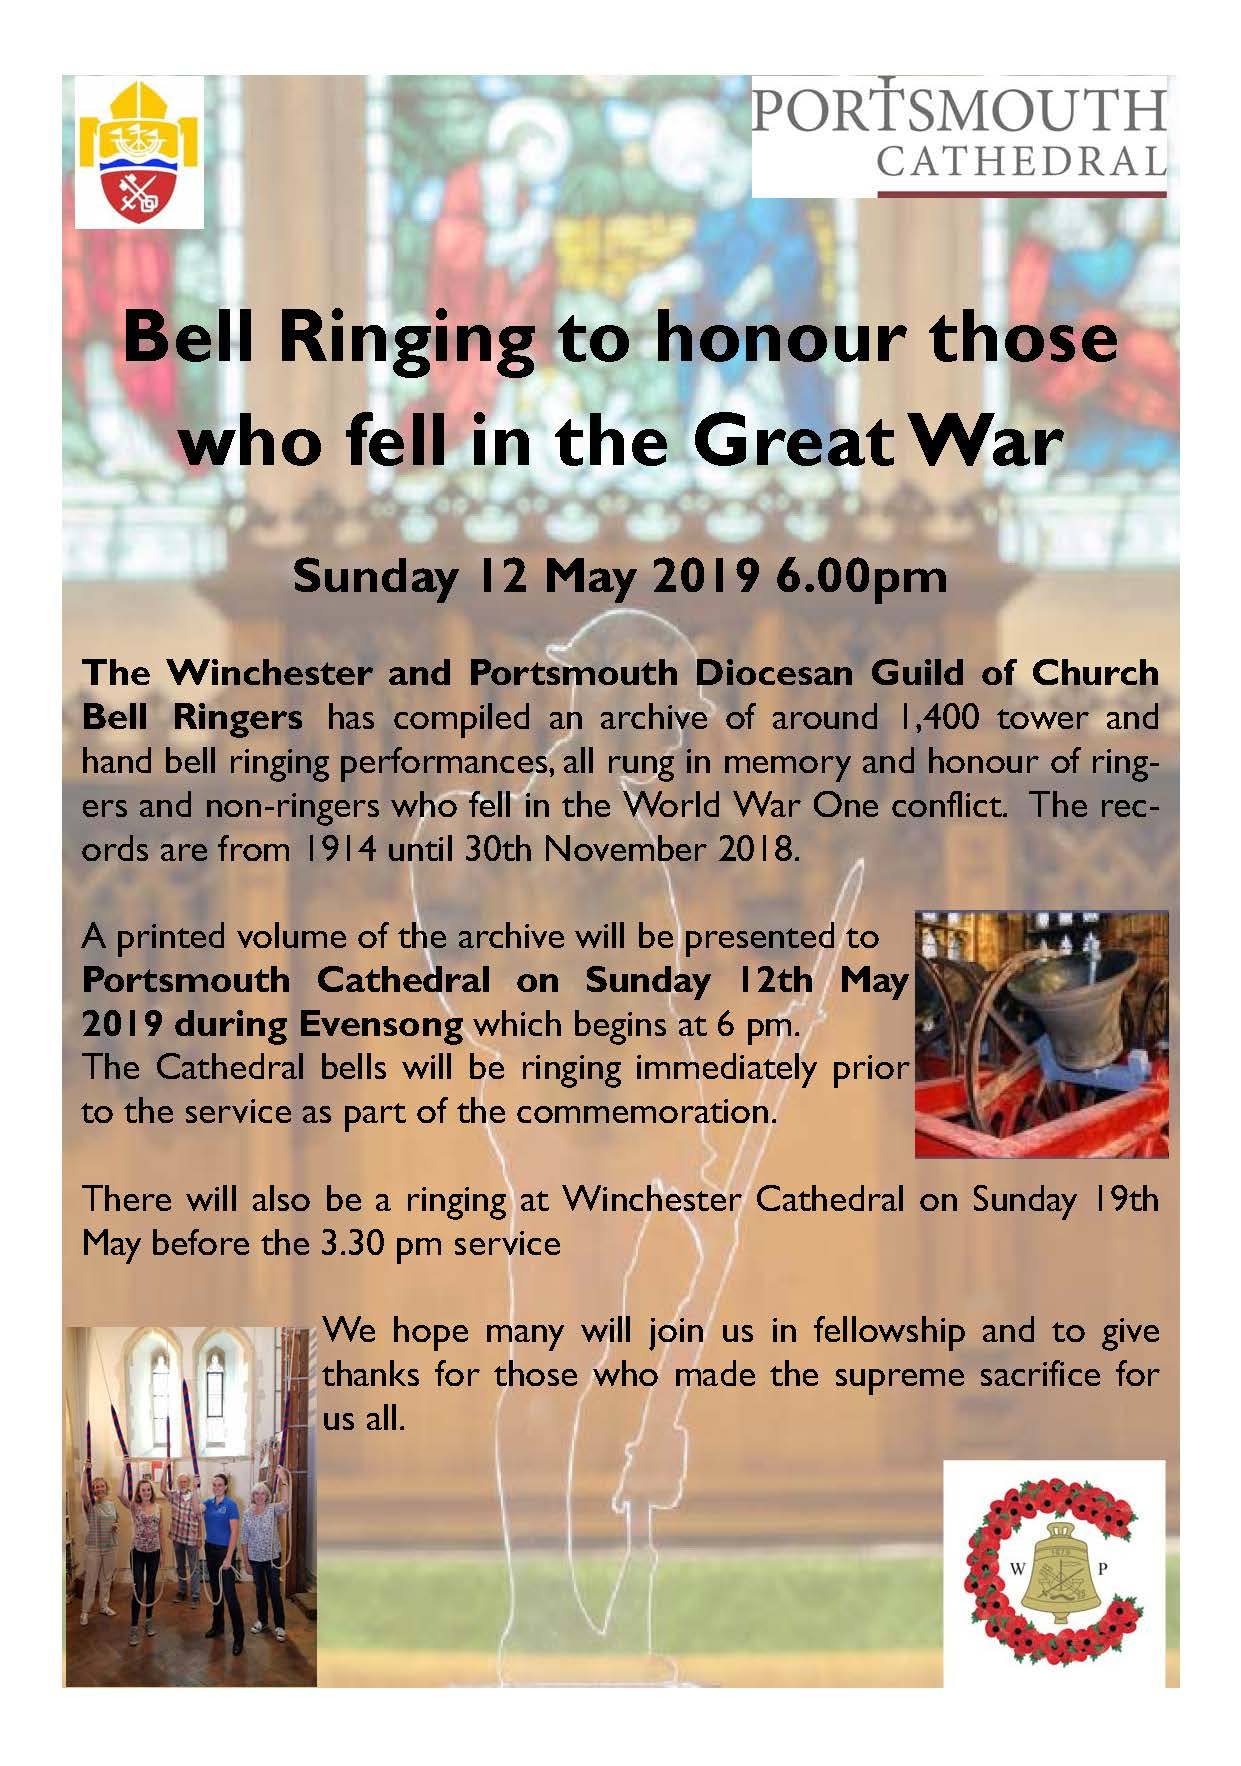 Guild WW1 WP service flyer - Portsmouth Cathedral